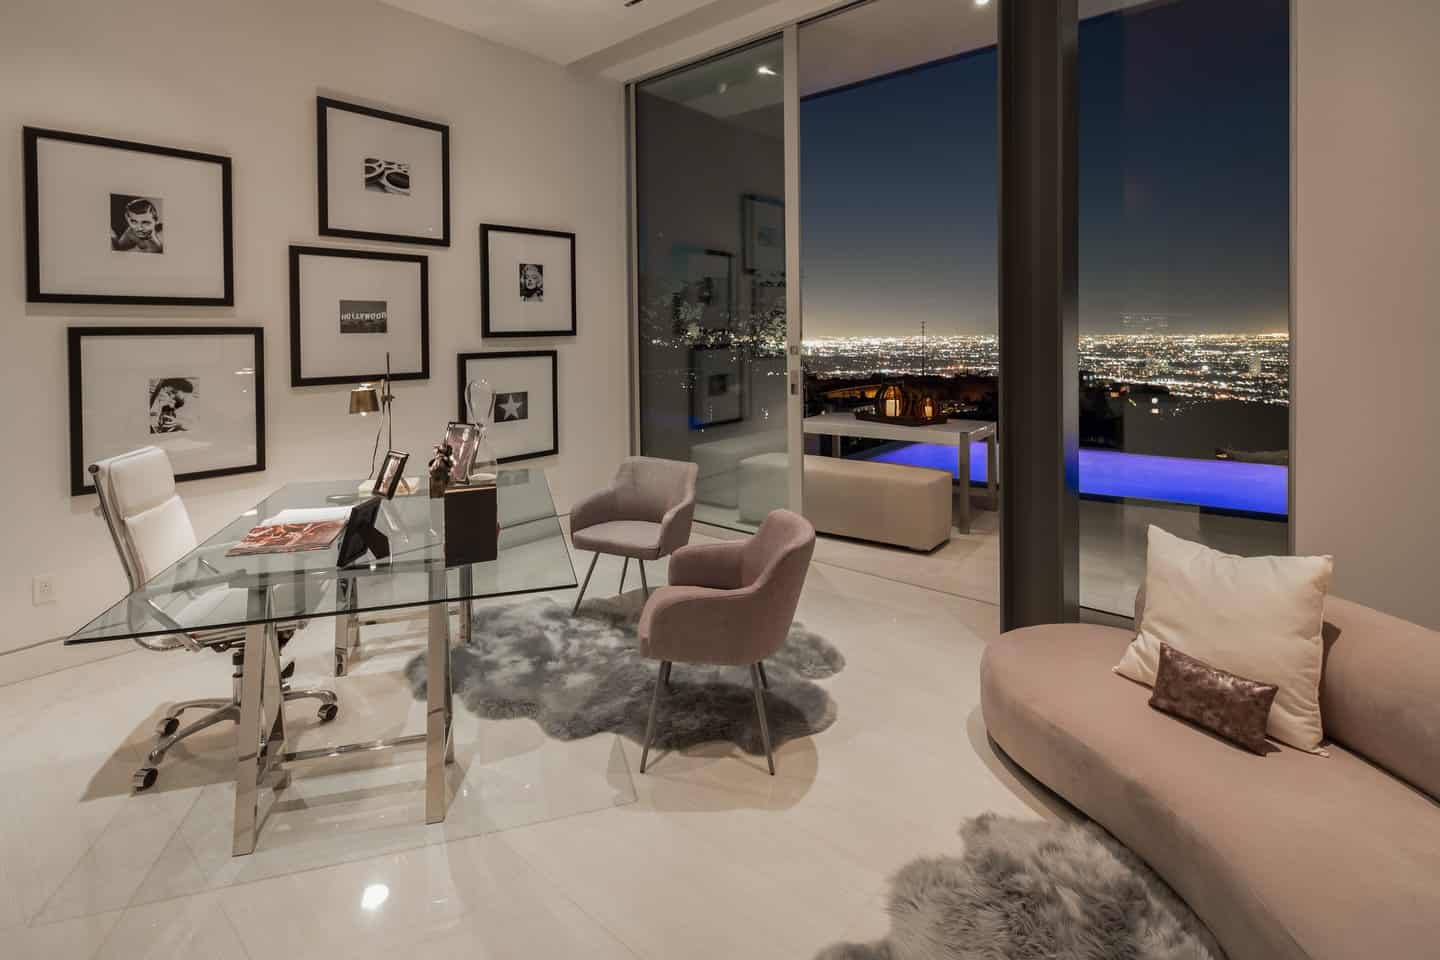 Architecture-Contemporary-Residence-Noesis Group-21-1 Kindesign